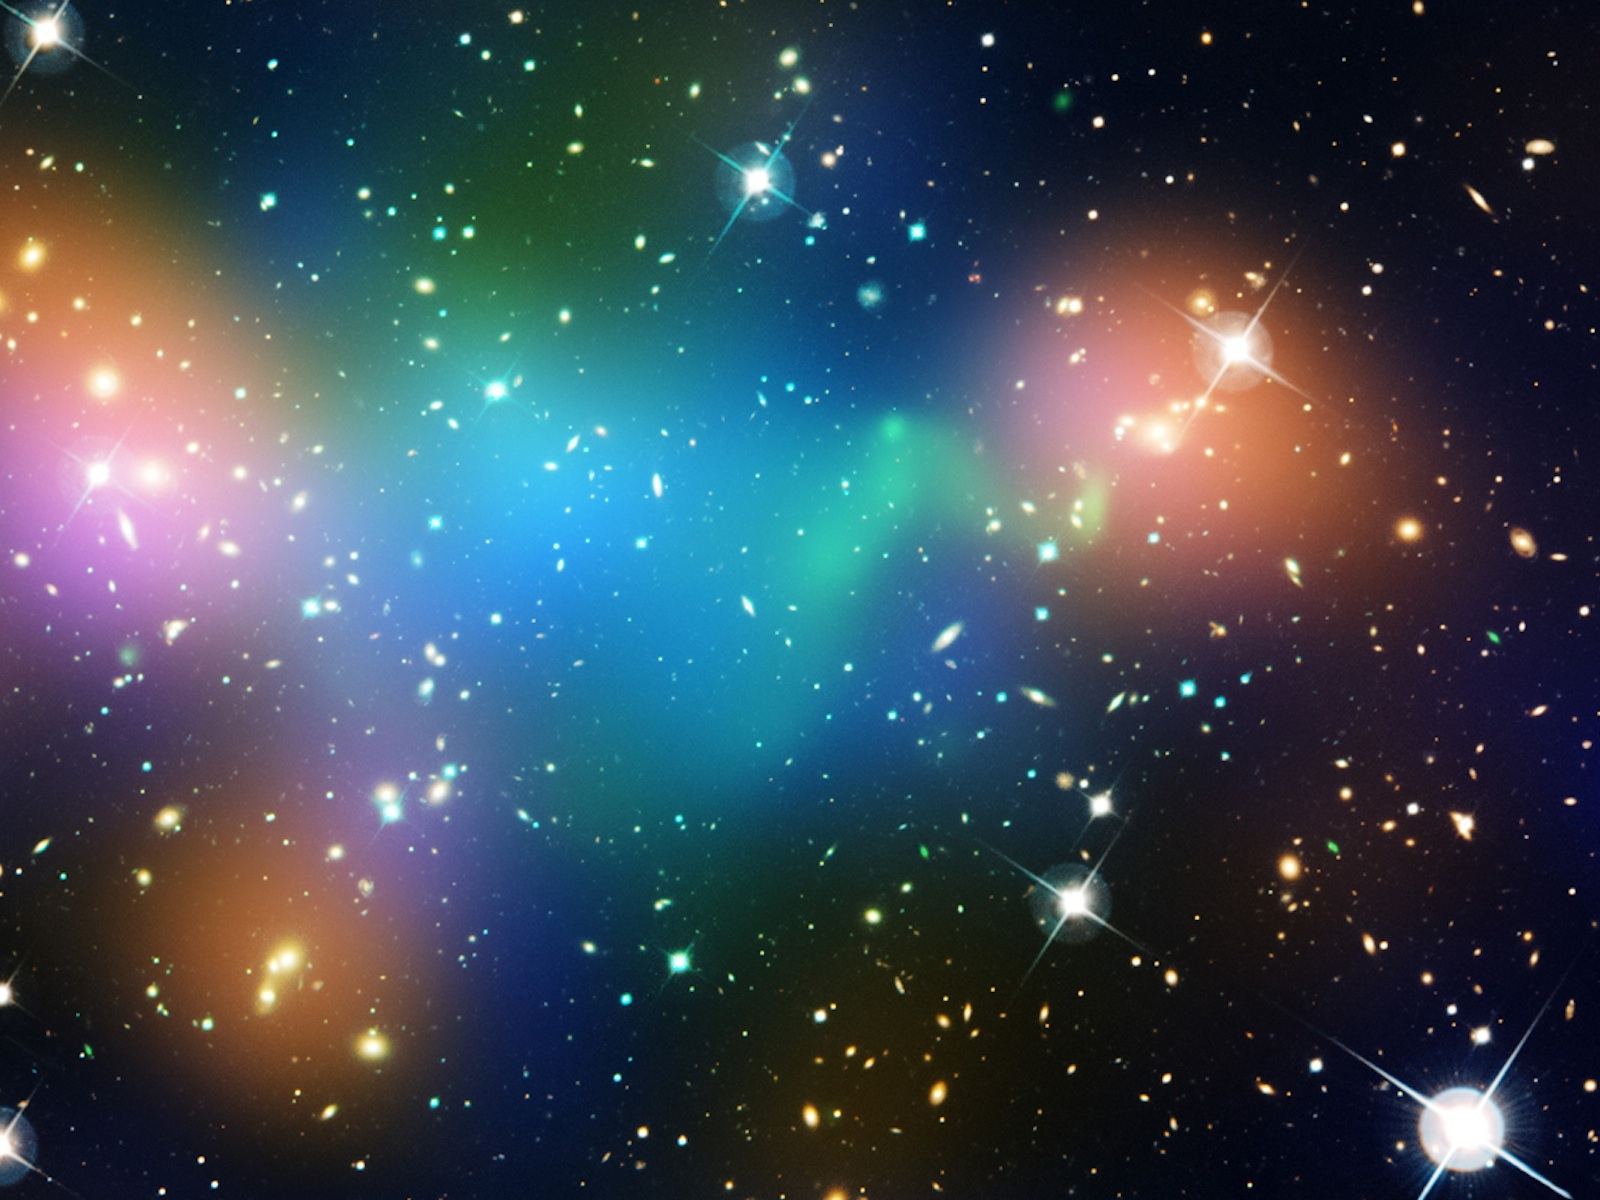 Dark Matter Core Defies Explanation in Hubble Image